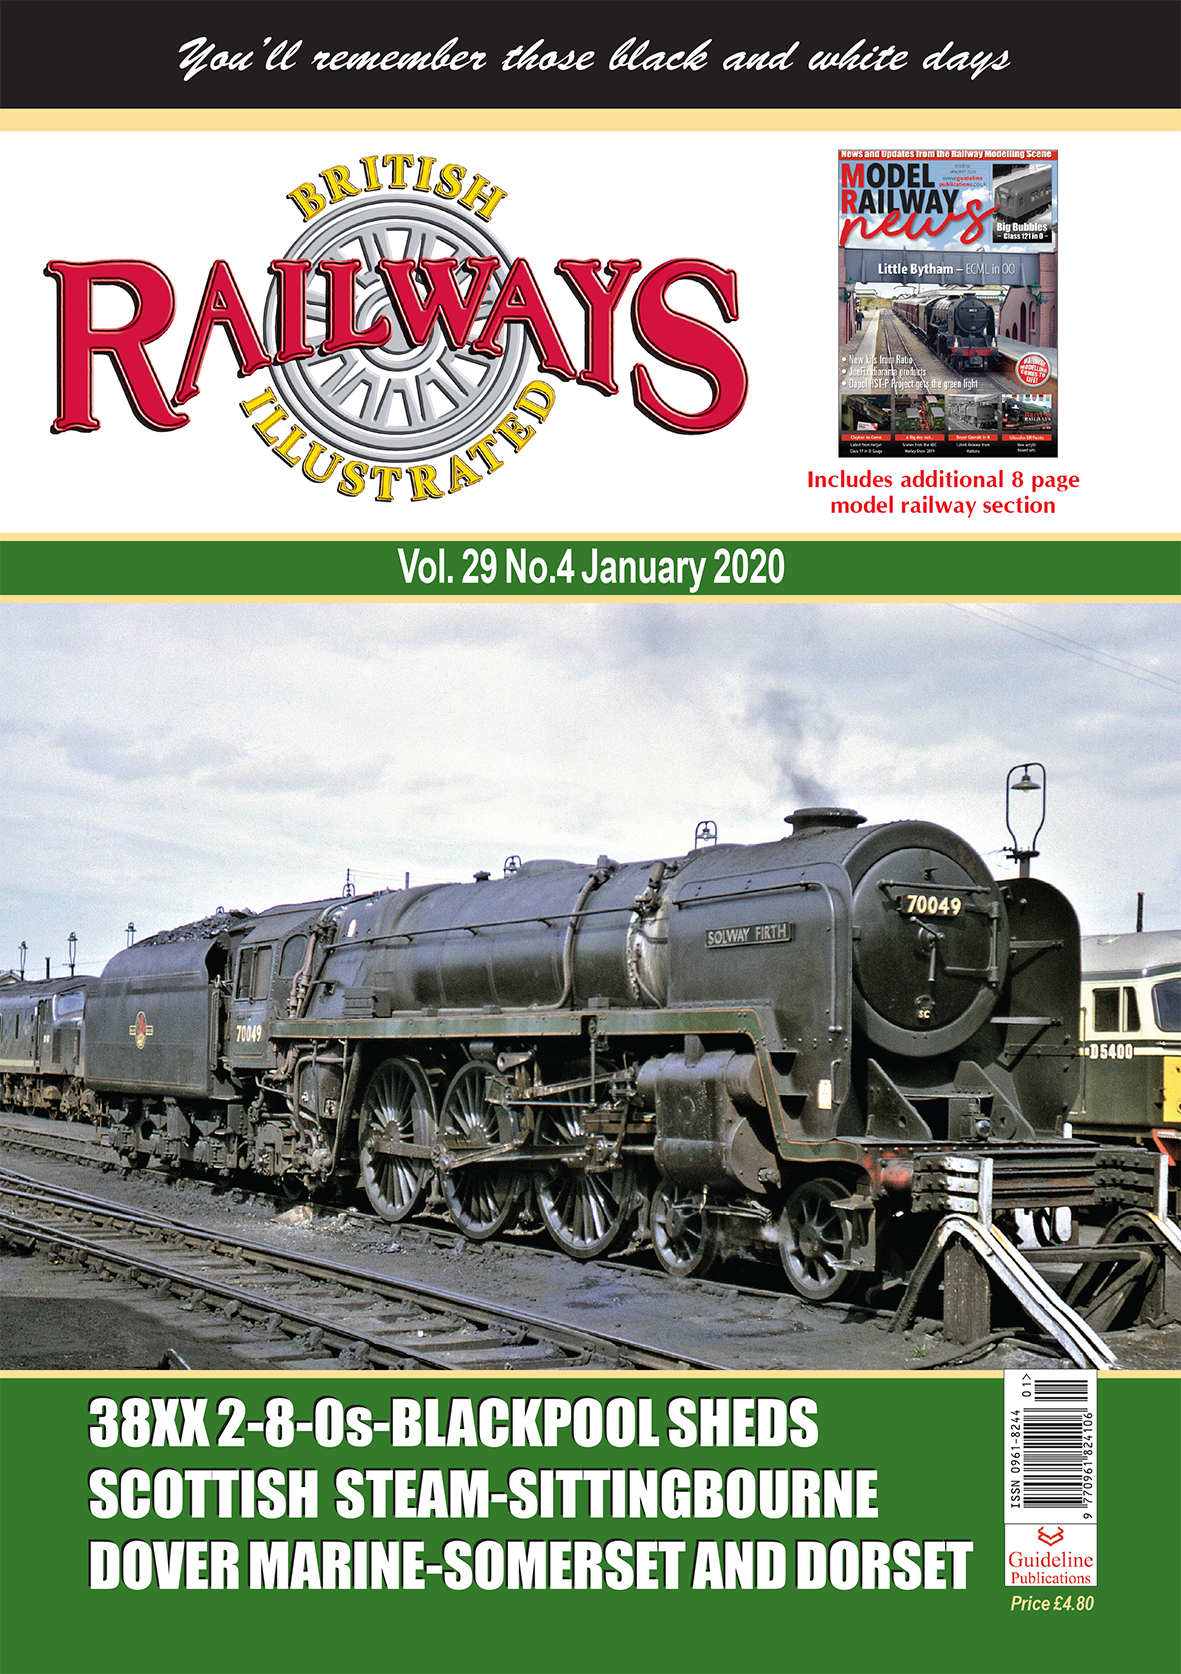 Guideline Publications British Railways Illustrated  vol 29 - 04 January 2020